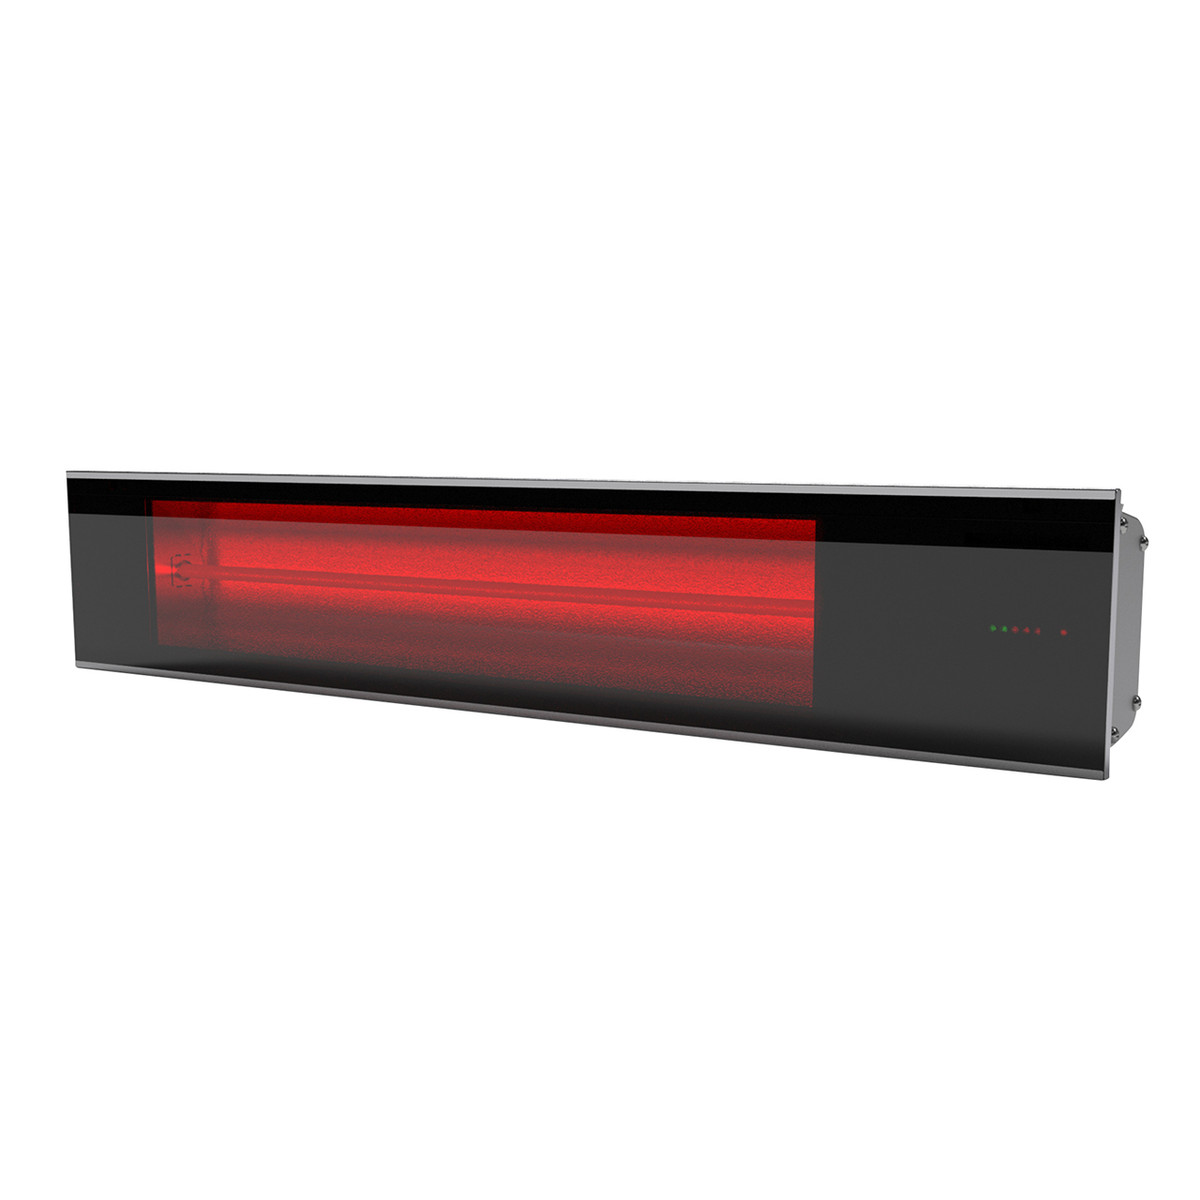 Dimplex DIR Series 2200W Indoor/ Outdoor Infrared Heaters w/ Remote Control 2200W, 240V